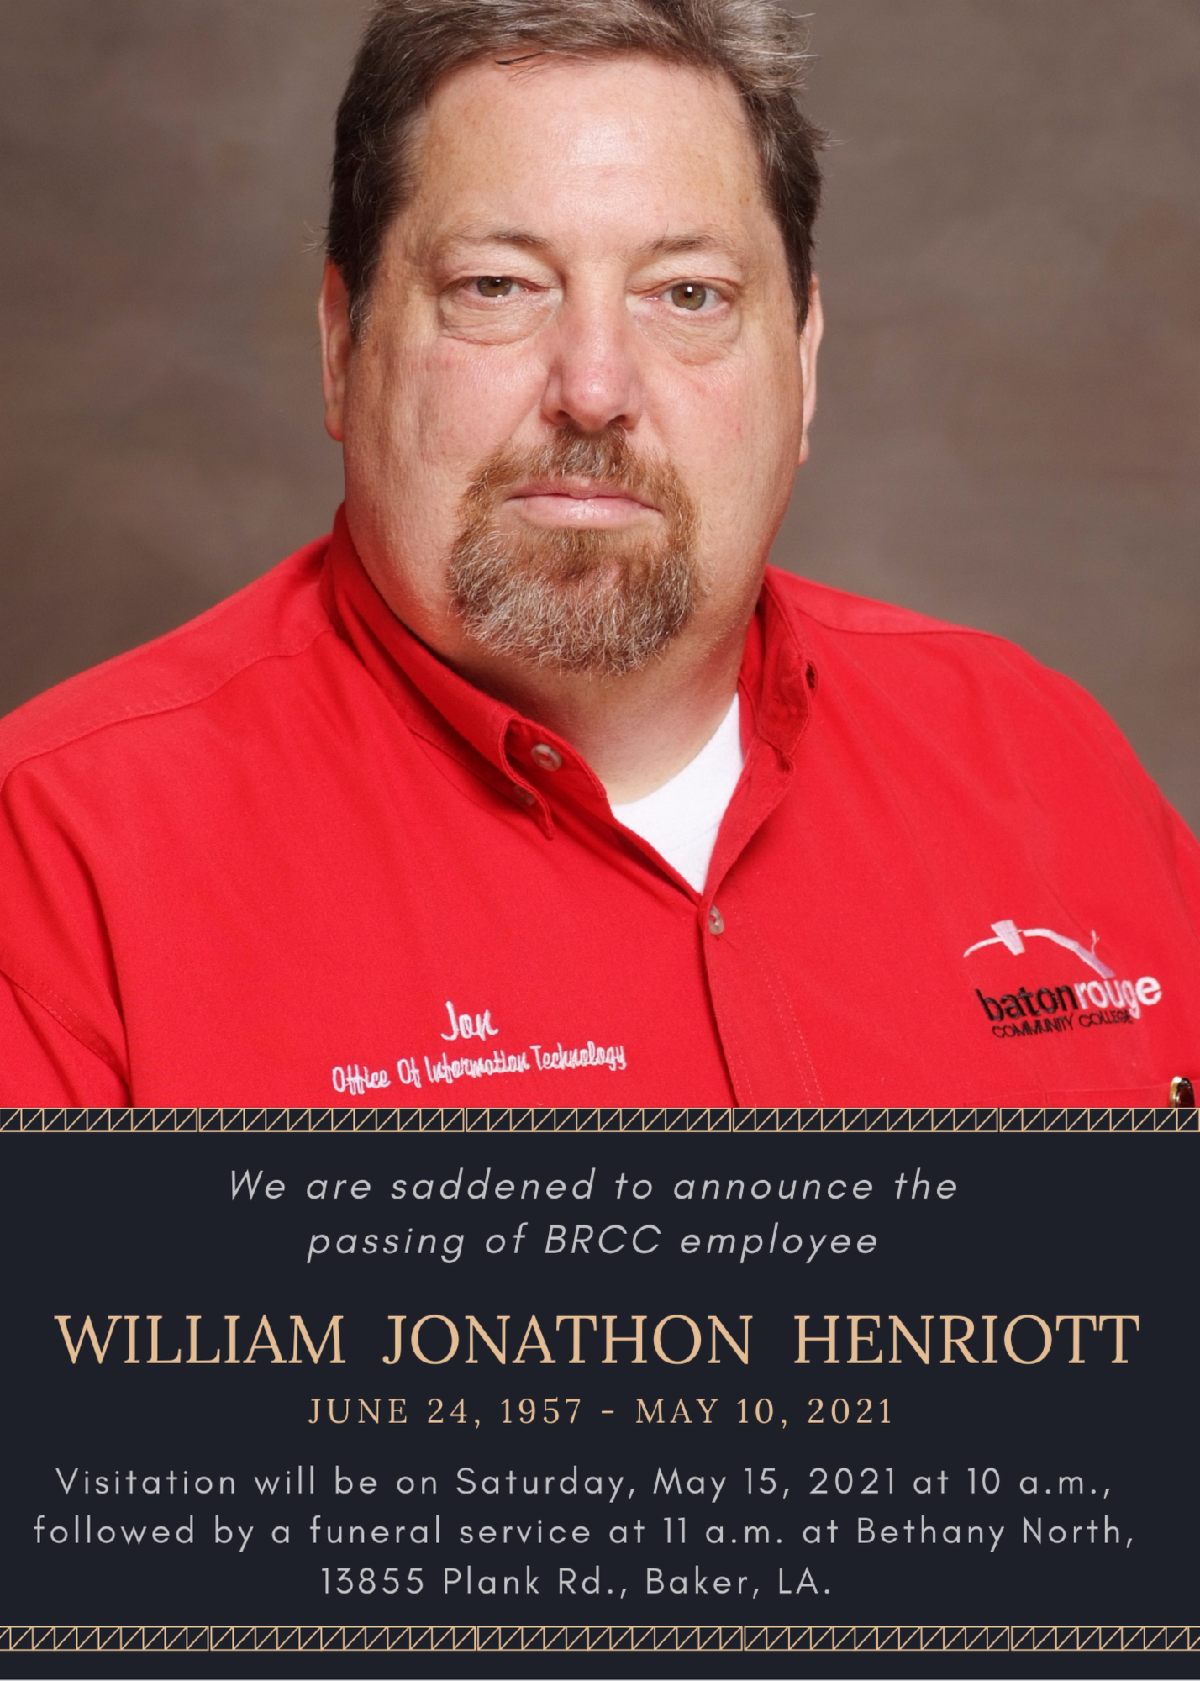 """We are saddened to announce the passing of a dear member of the Baton Rouge Community College family, William Jonathon Henriott, known to his family and colleagues as """"Jon."""" Henriott was a long-time member of the BRCC community, having served for nearly 19 years, since September 2002, in the Information Technology Department.  Through his position as an IT Tech Support Manager, Jon worked with nearly every employee at the college and was always there to support BRCC's students, faculty, and staff through all initiatives and projects. He always met you with a smile, a joke, or a little history as he gave you background information on the project that you were undertaking.  The BRCC family extends our deepest condolences to the family and loved ones of Jon. We acknowledge his invaluable contributions to this institution, and his overall dedication to BRCC. His work will forever impact our college community. Our thoughts and prayers are with the Henriott Family during this difficult time.   Visitation will be on Saturday, May 15, 2021 at 10 a.m., followed by a funeral service at 11 a.m. at Bethany North, 13855 Plank Rd., Baker, LA."""